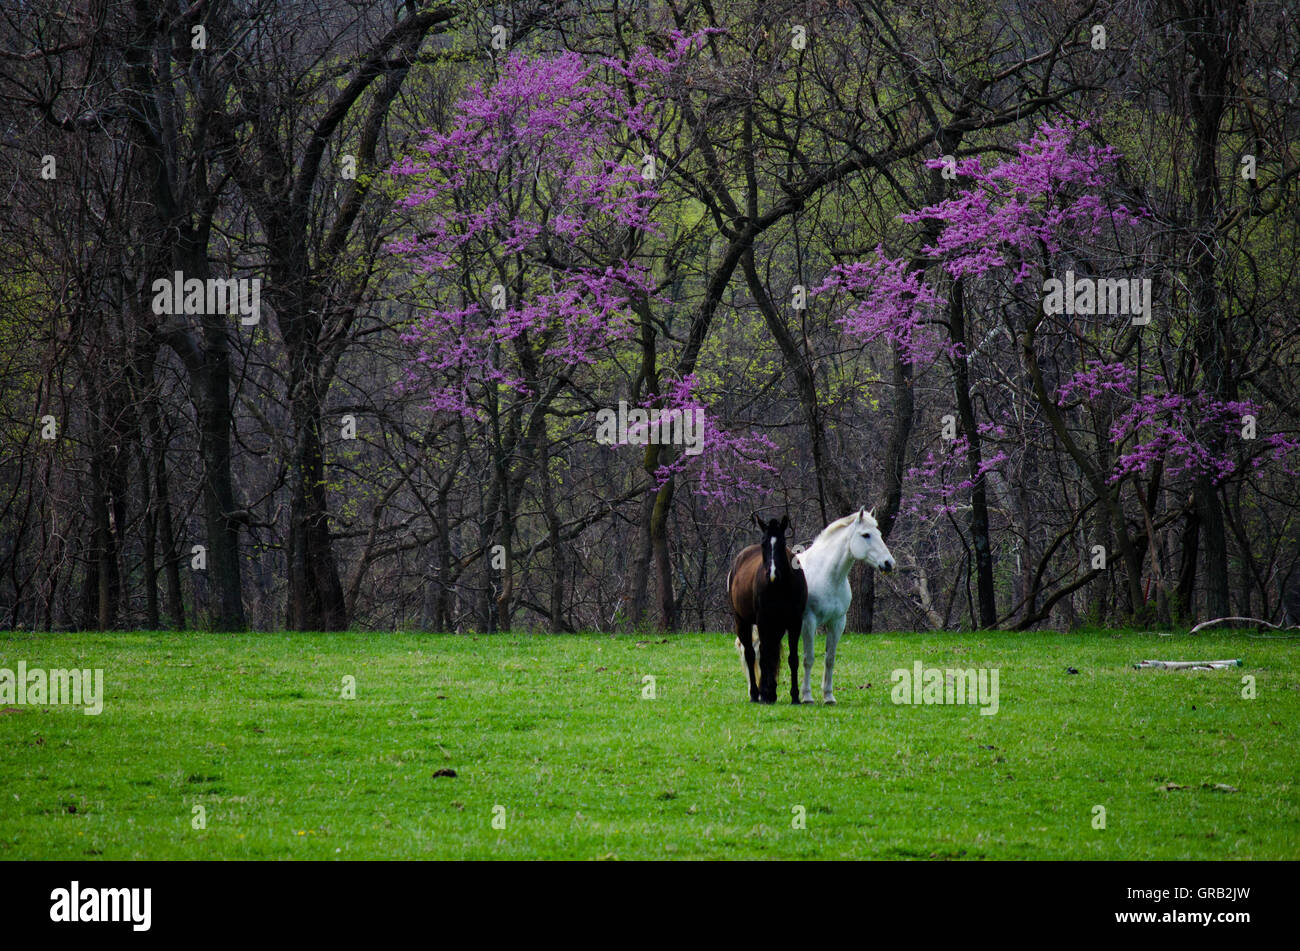 Two horses show companionship. - Stock Image